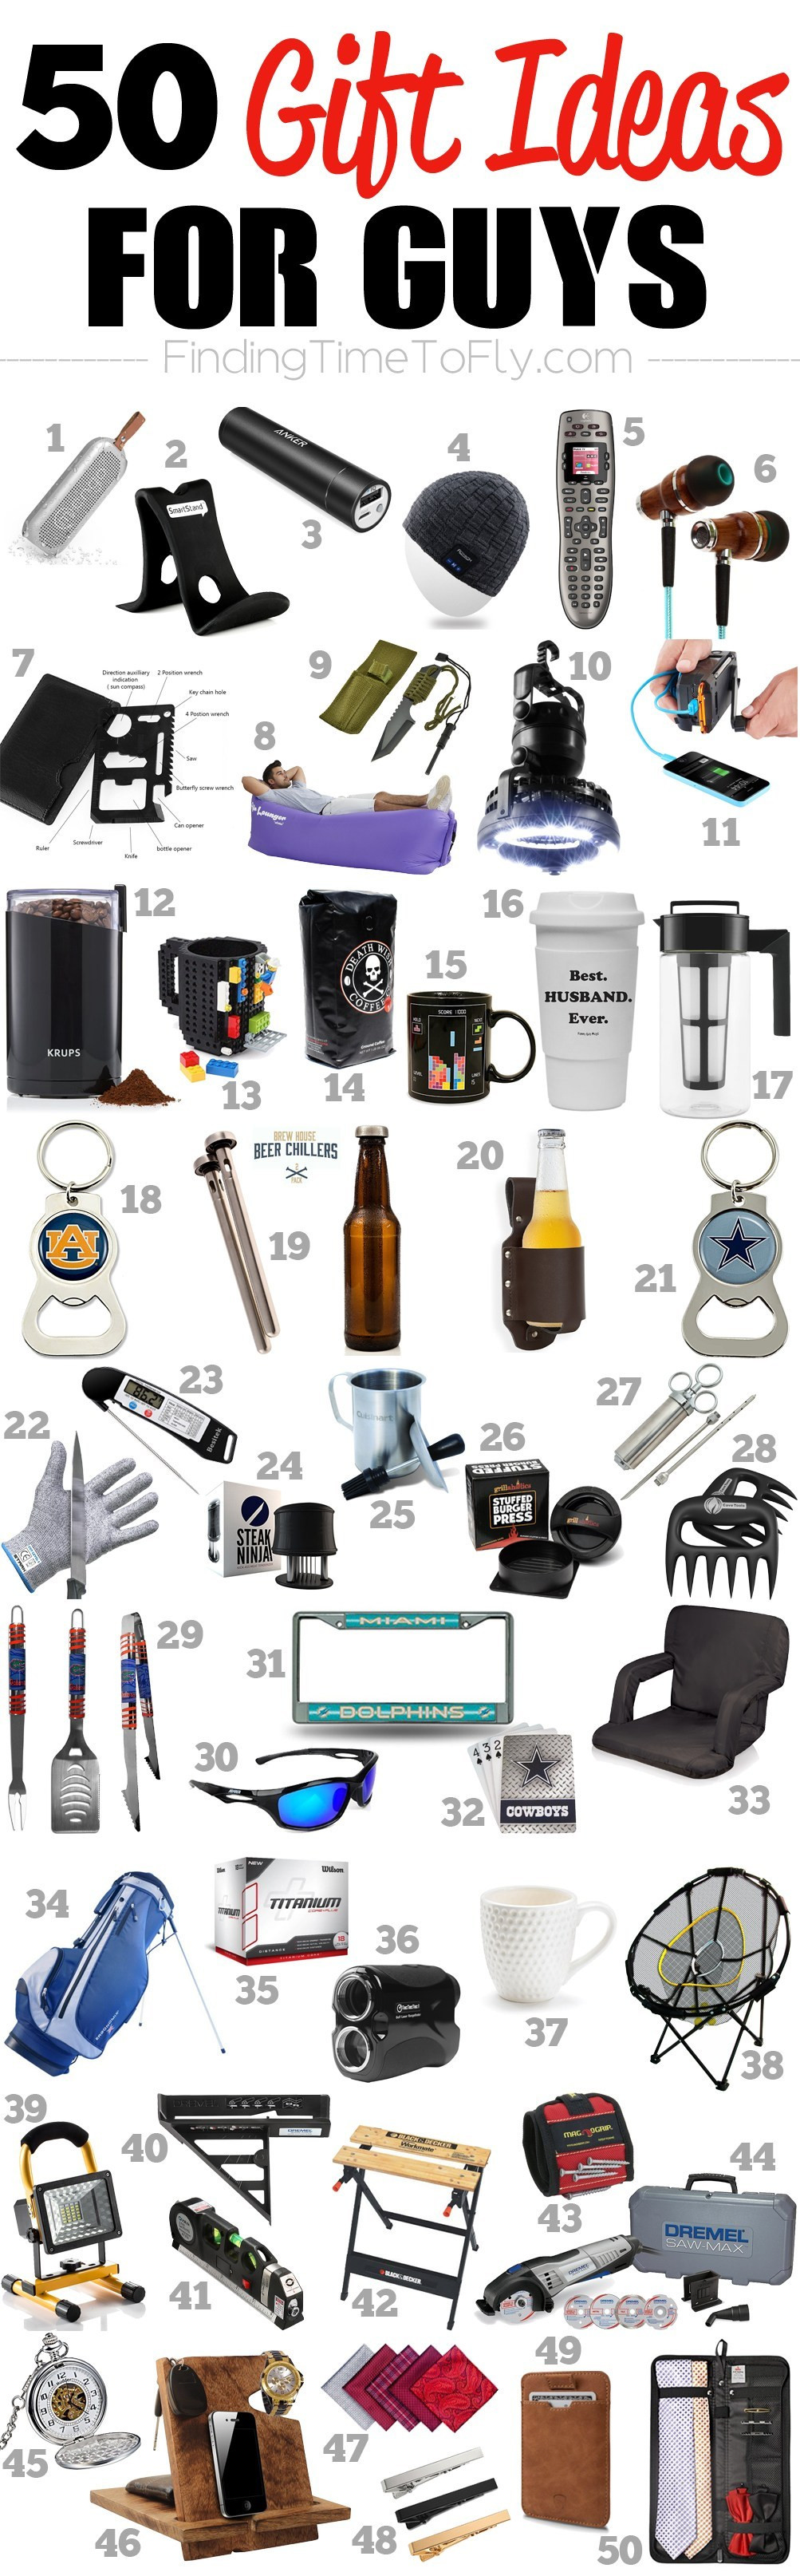 Best ideas about Good Birthday Gifts For Guys . Save or Pin 50 Gifts for Guys for Every Occasion Finding Time To Fly Now.